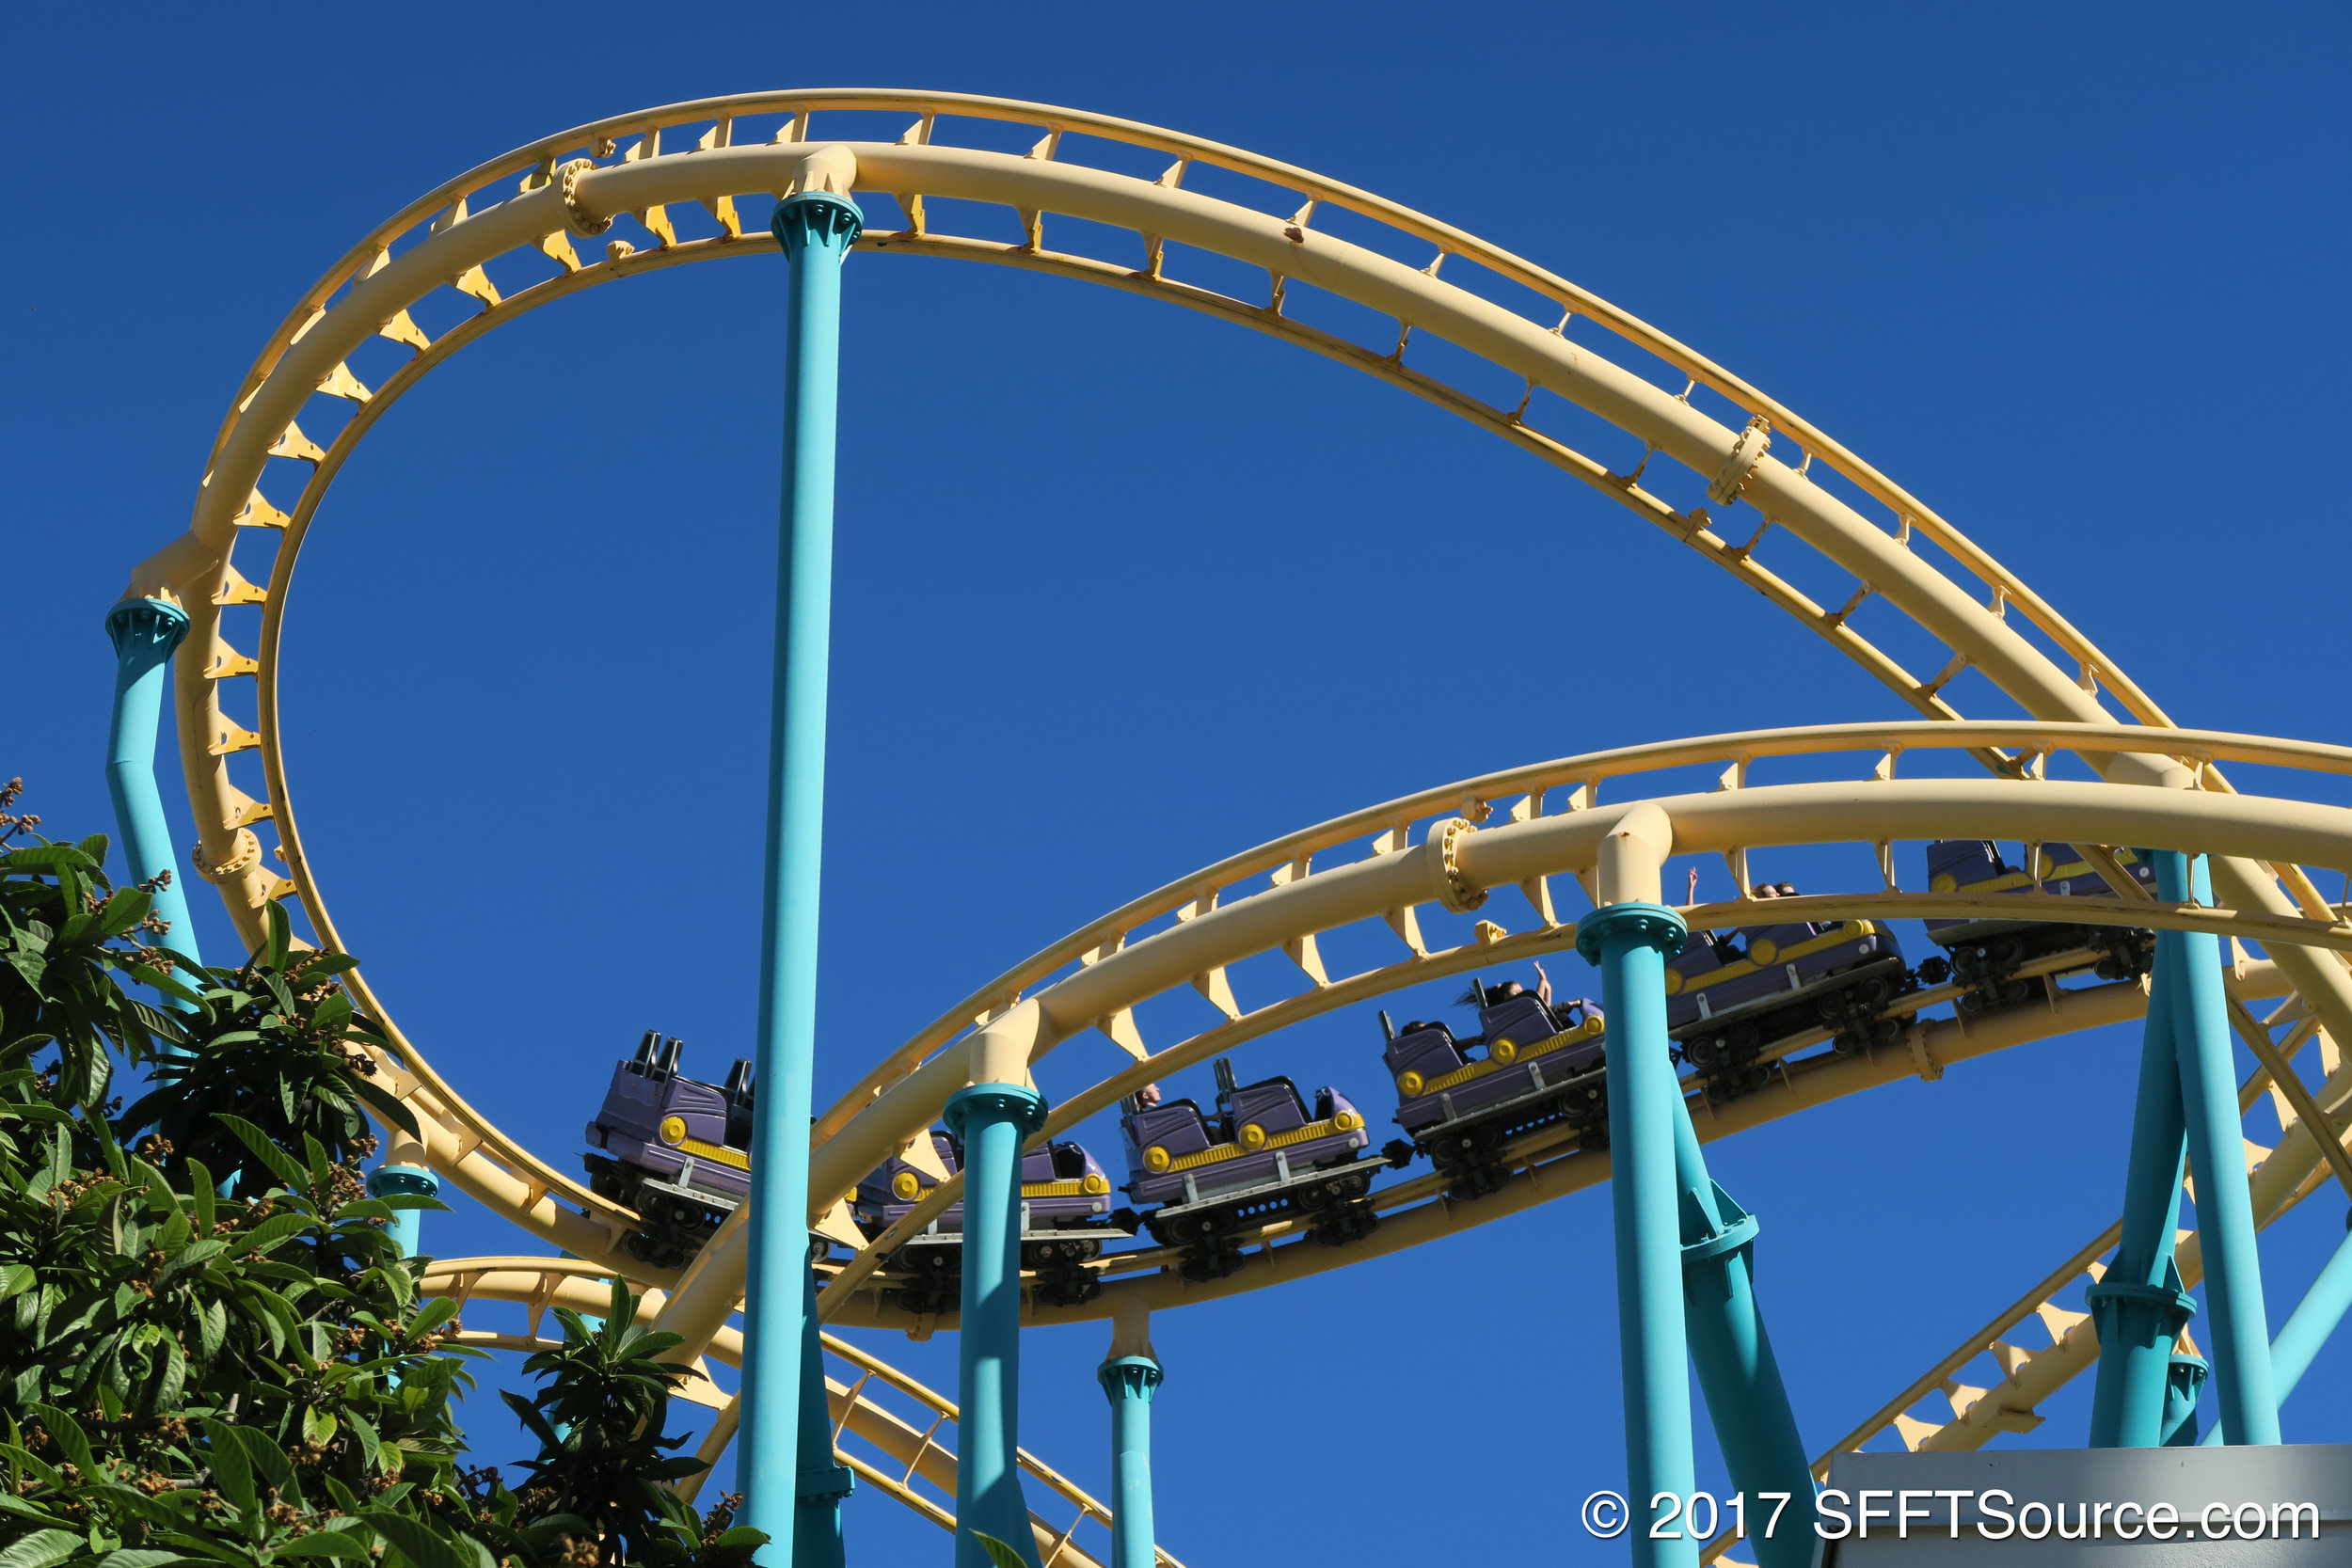 Guests are launched from 0-60 MPH to start the ride.